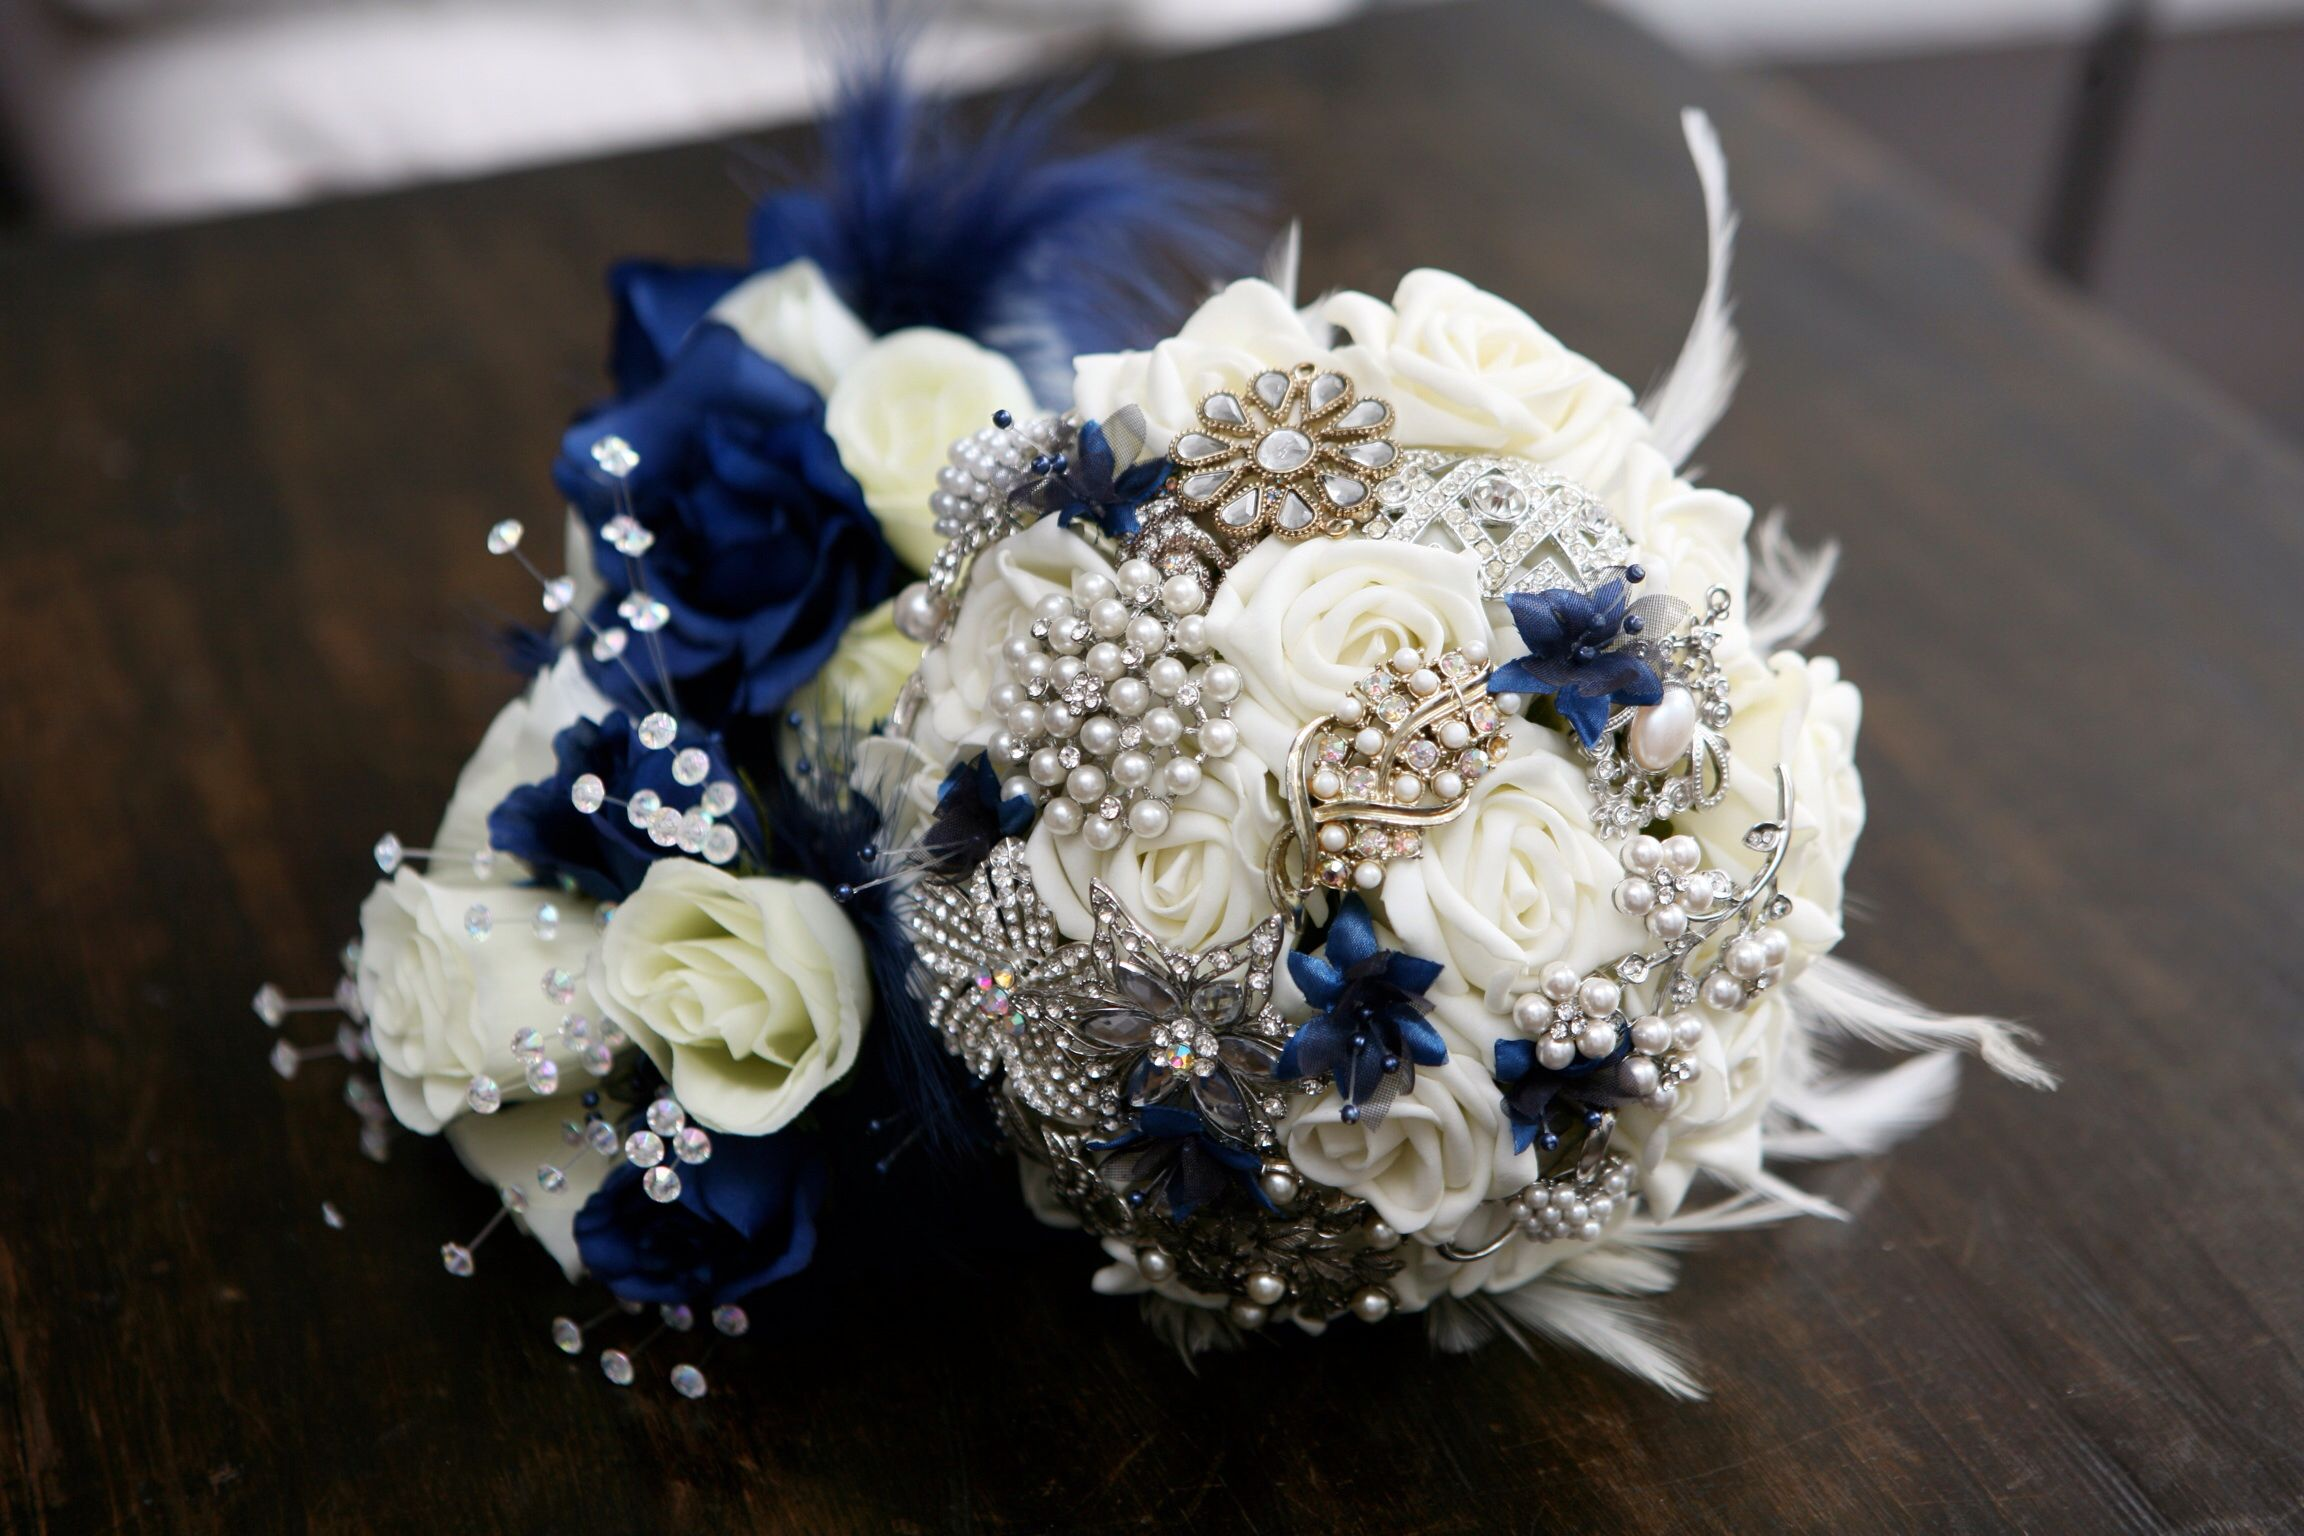 My Wedding Bouquet, brooches, satin flowers and feathers